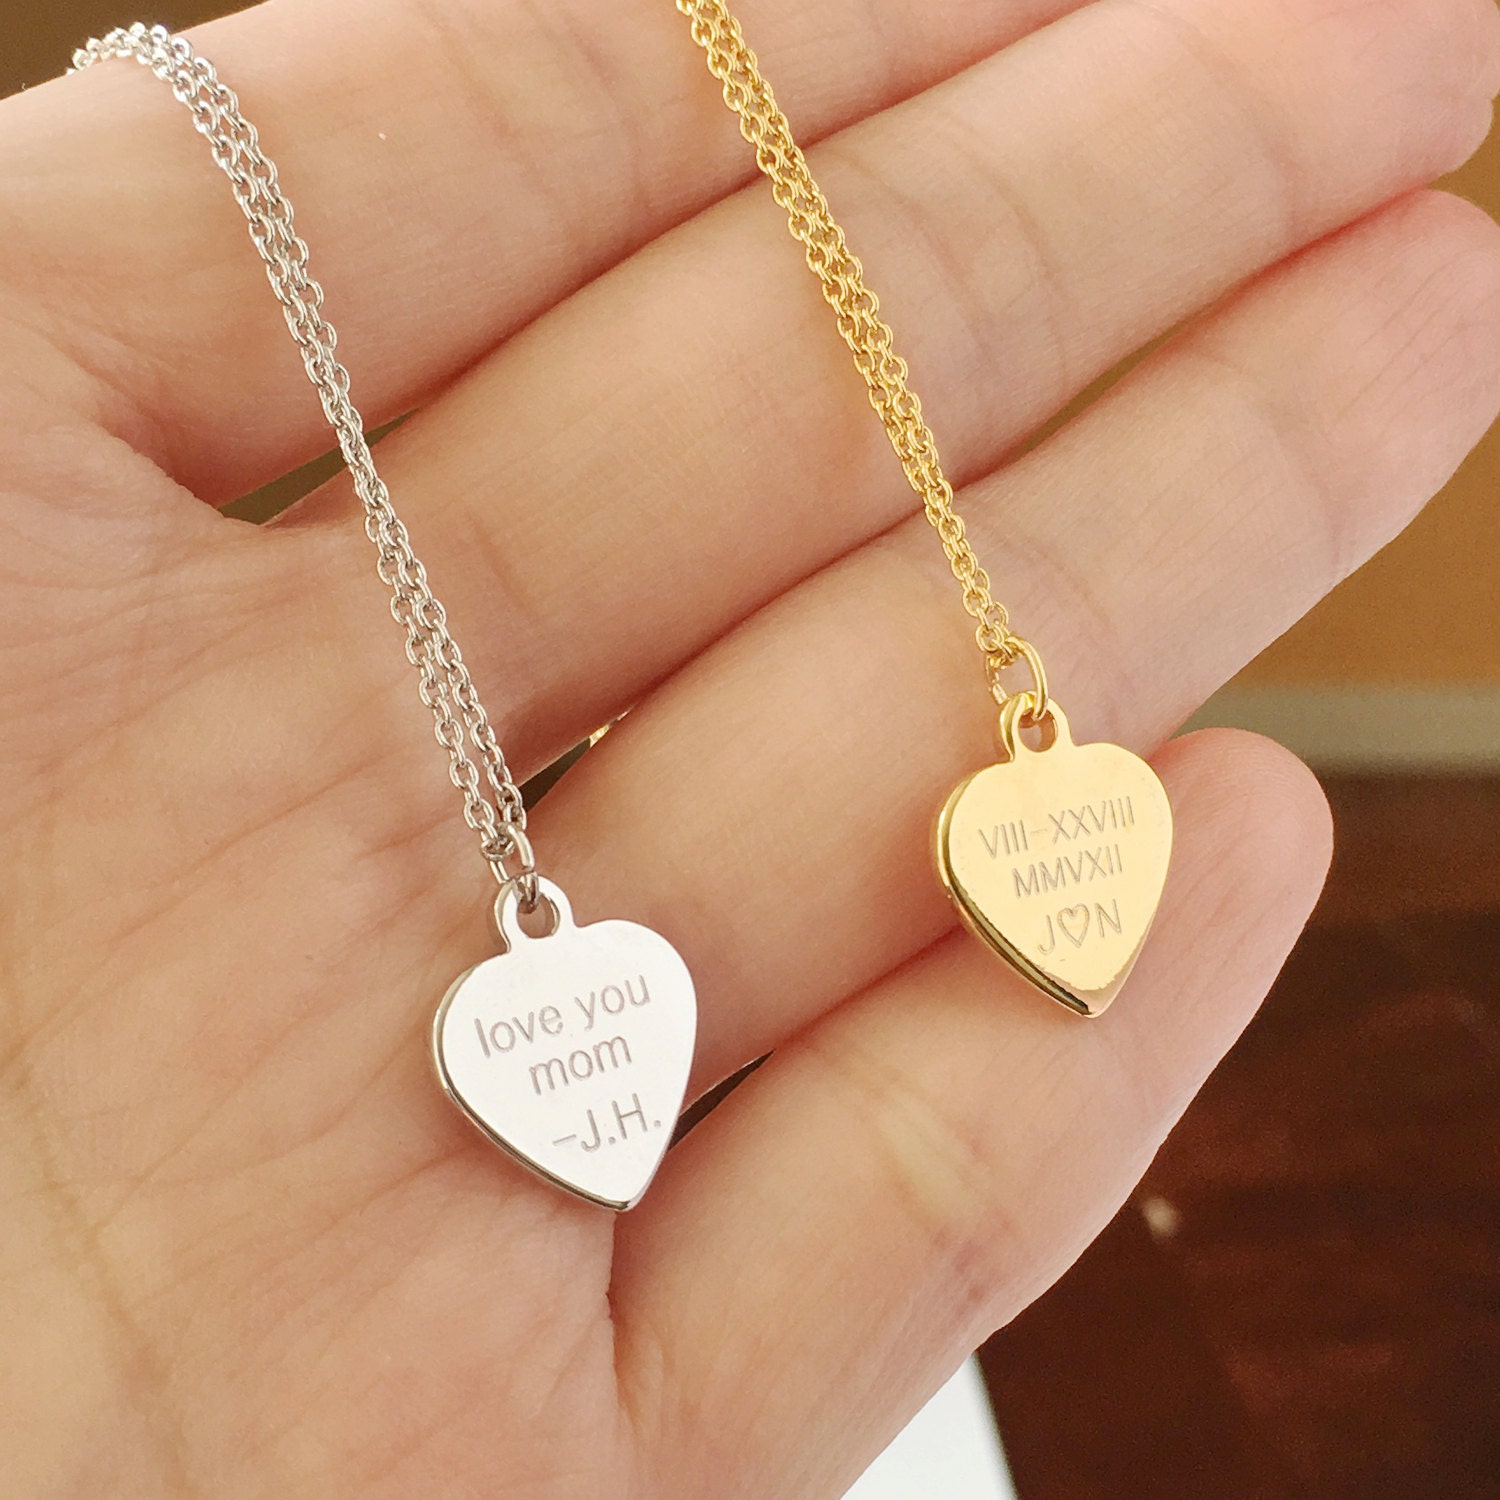 what to engrave on a necklace